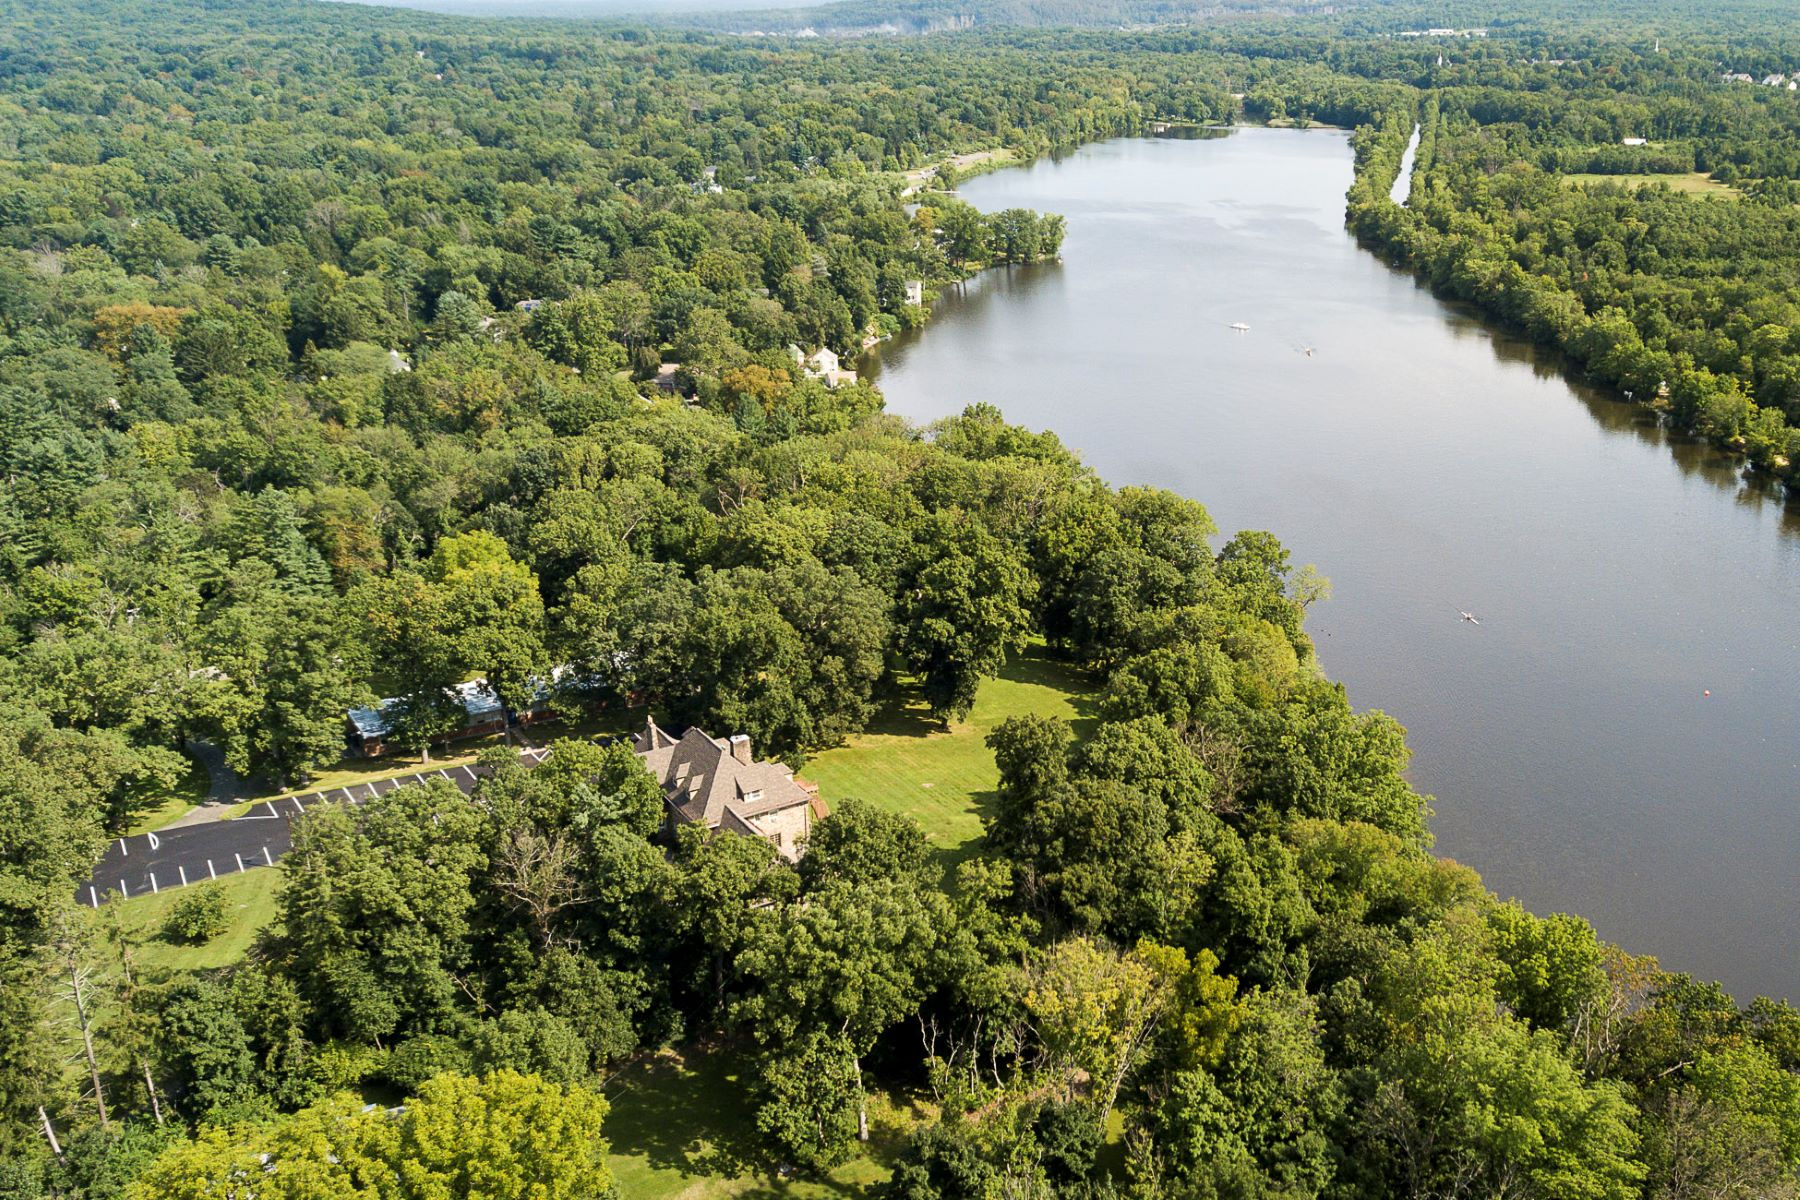 Single Family Home for Sale at Unprecedented Lake-Front Development Opportunity 601 Prospect Avenue, Princeton, New Jersey 08540 United States